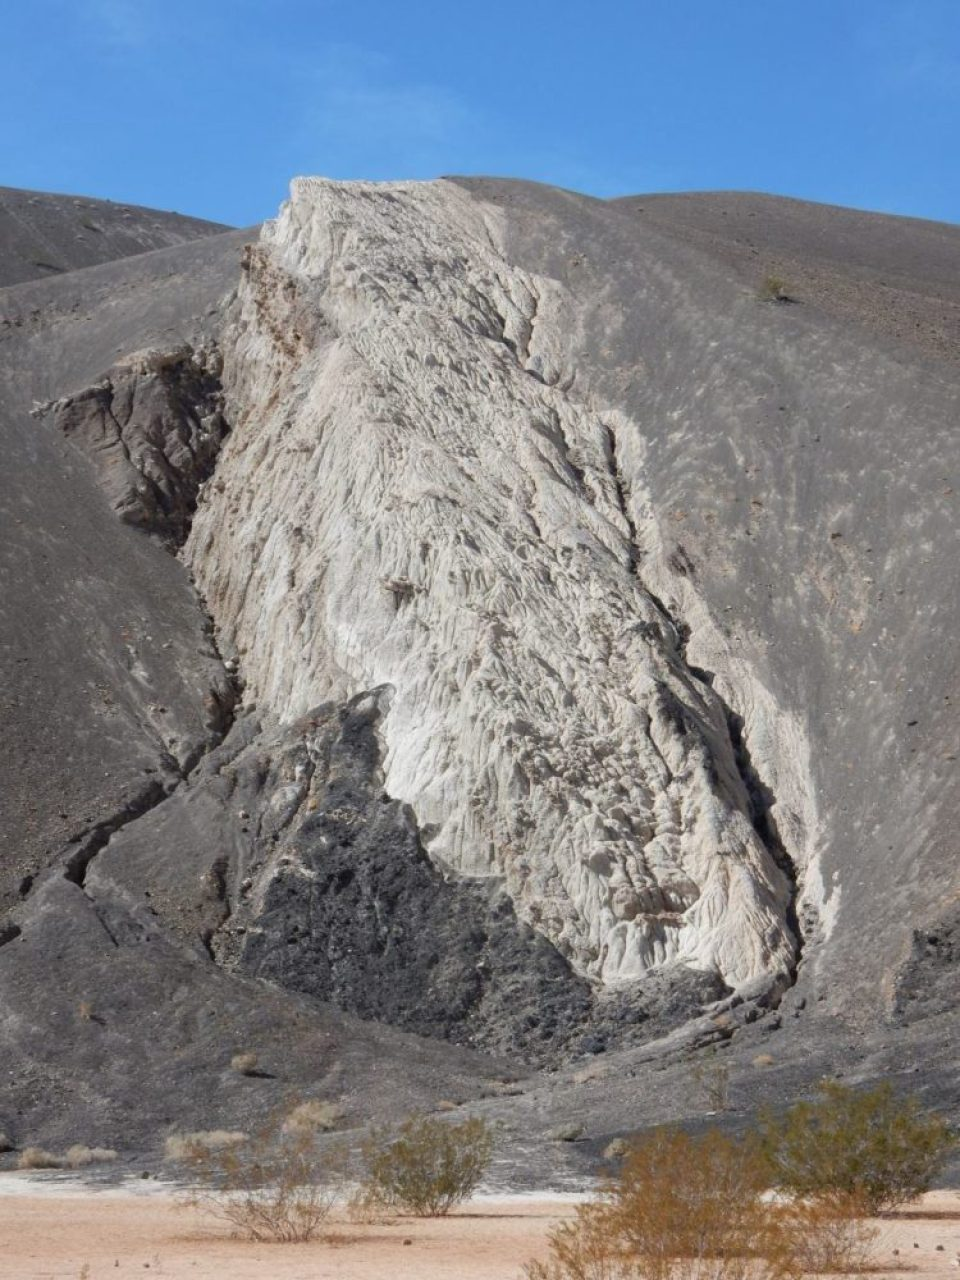 The cool rock formation best seen from within the crater.